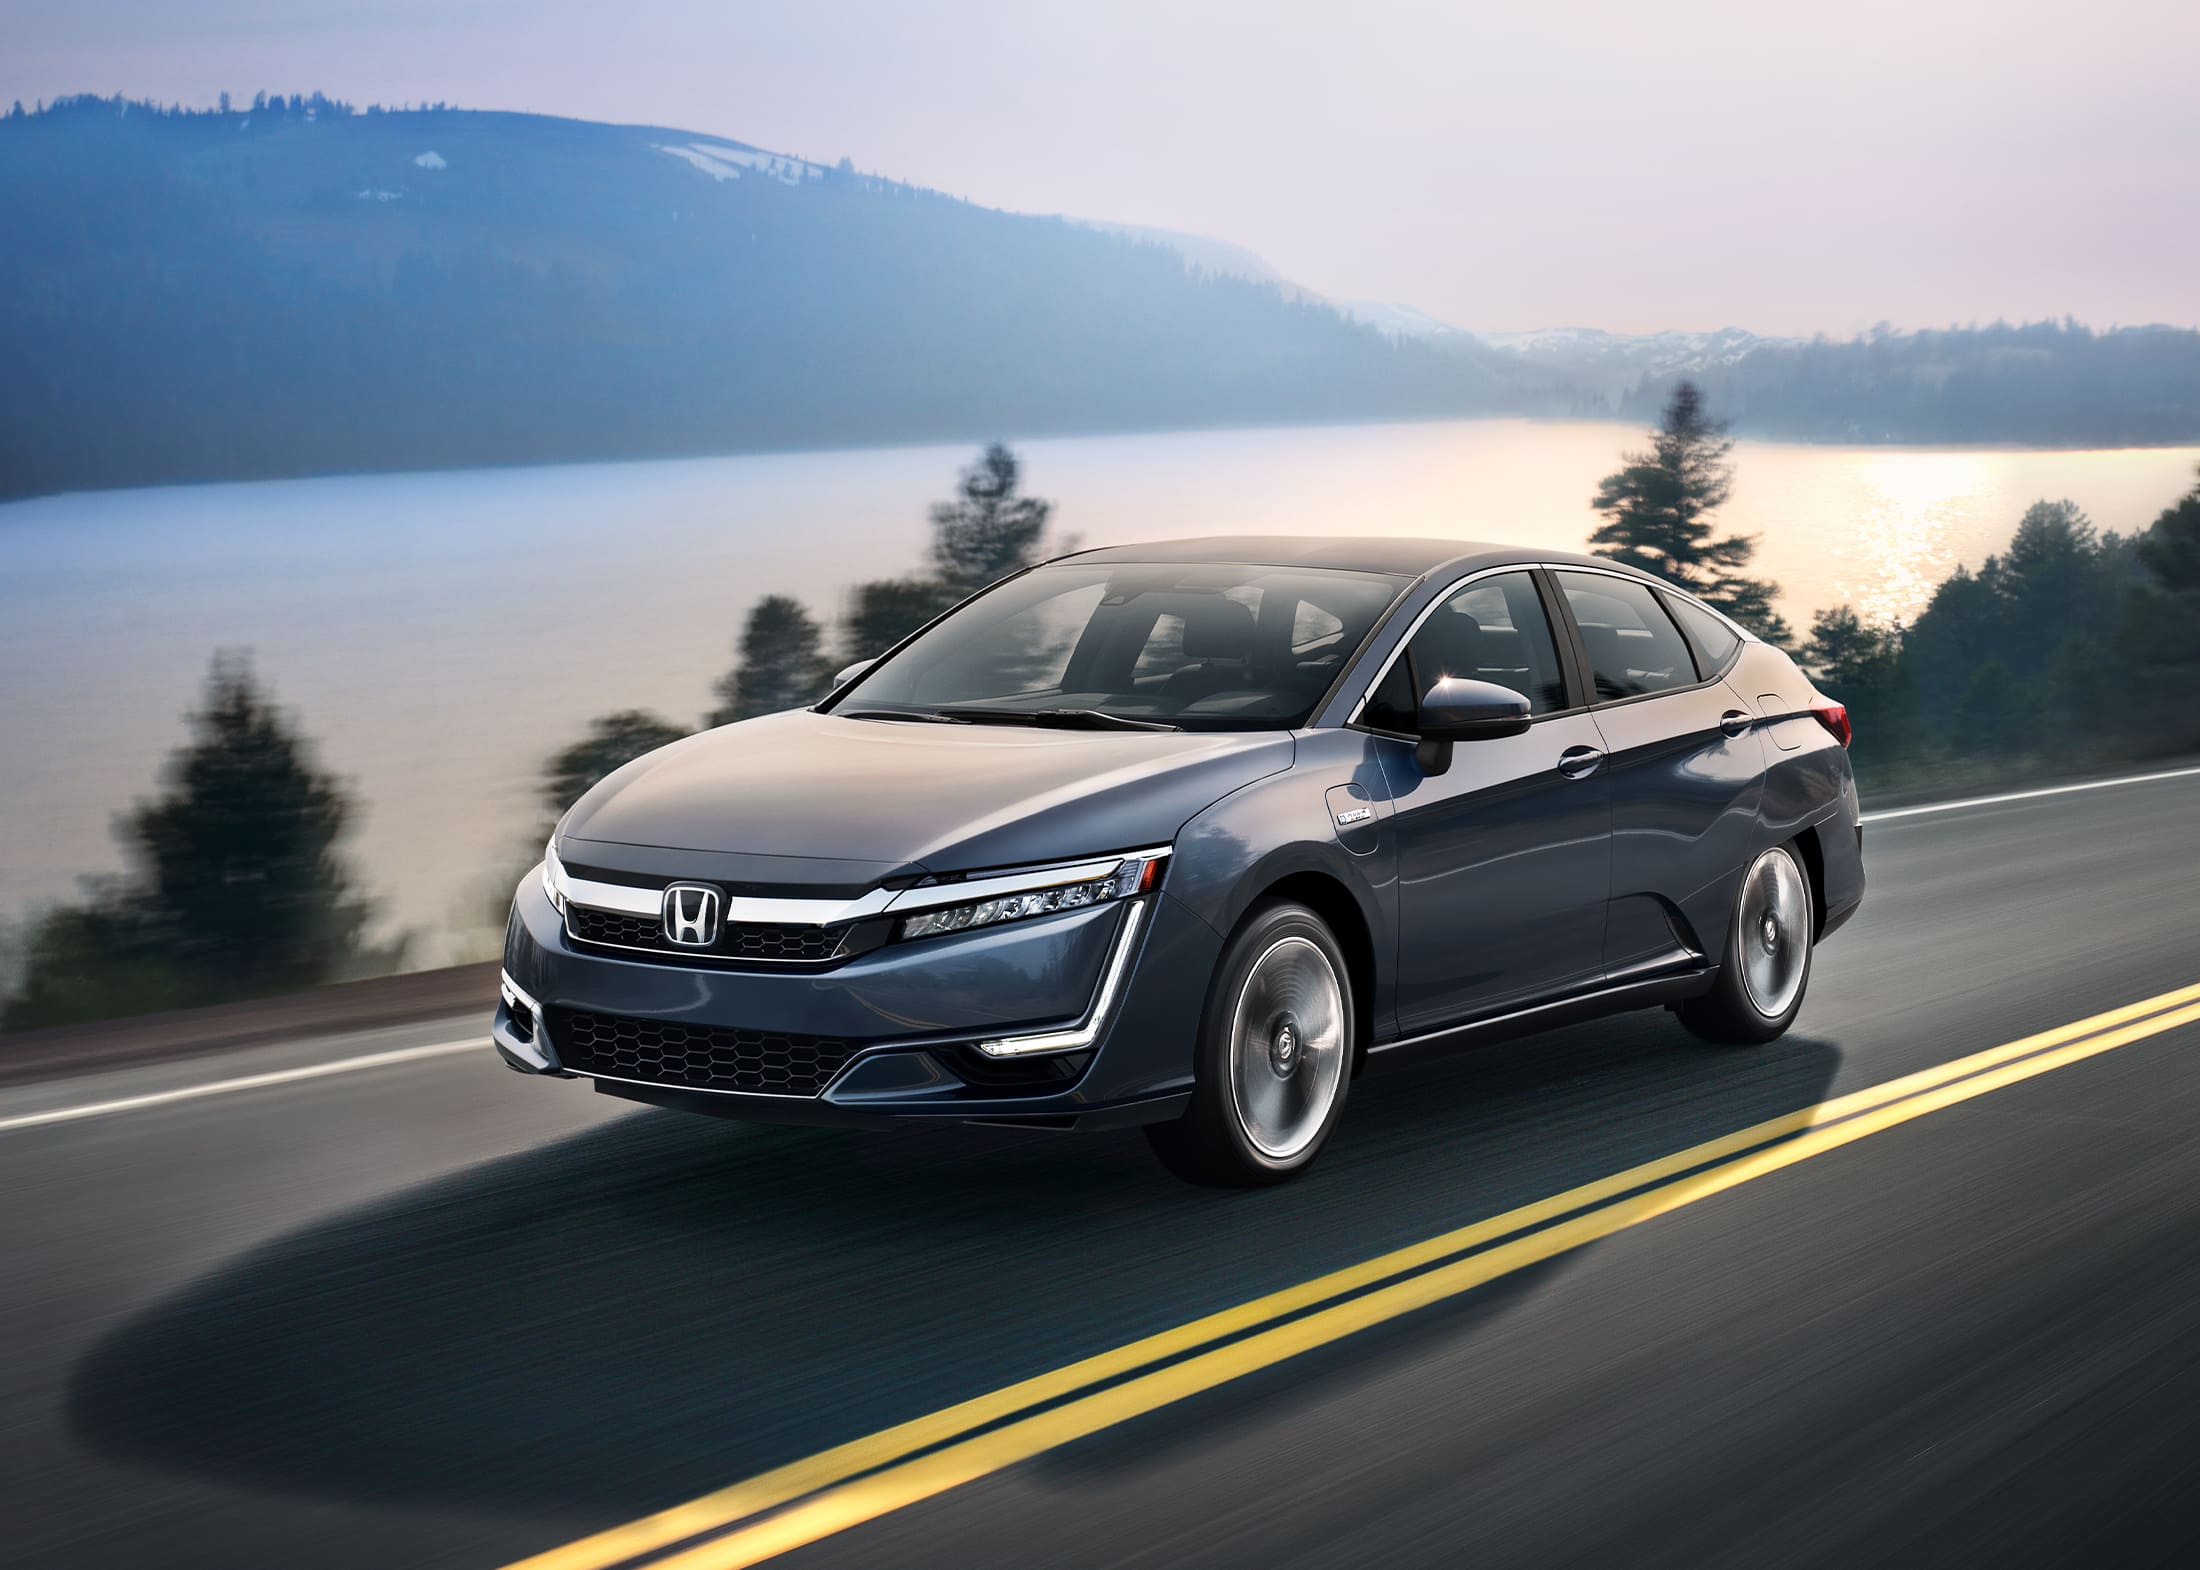 The Clarity Plug-In Hybrid is shown in Modern Steel Metallic driving past a body of water.